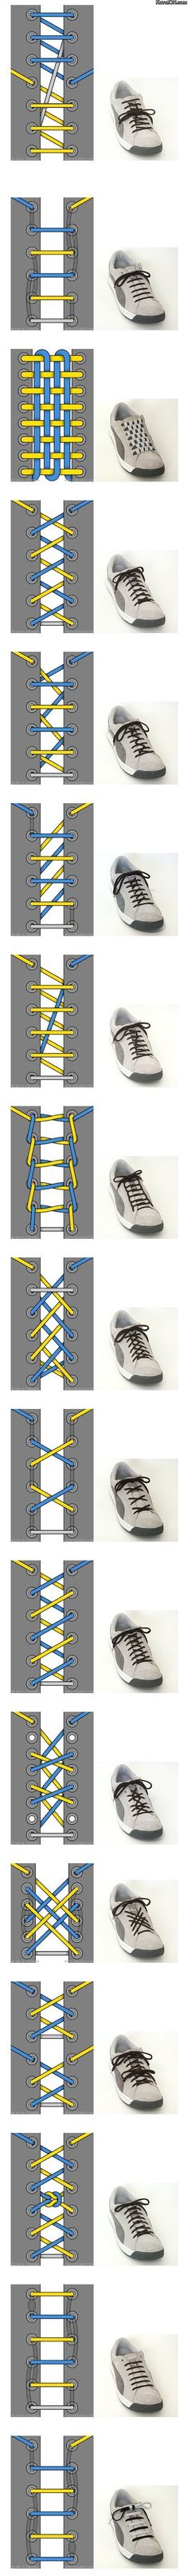 17 ways to tie your shoe laces